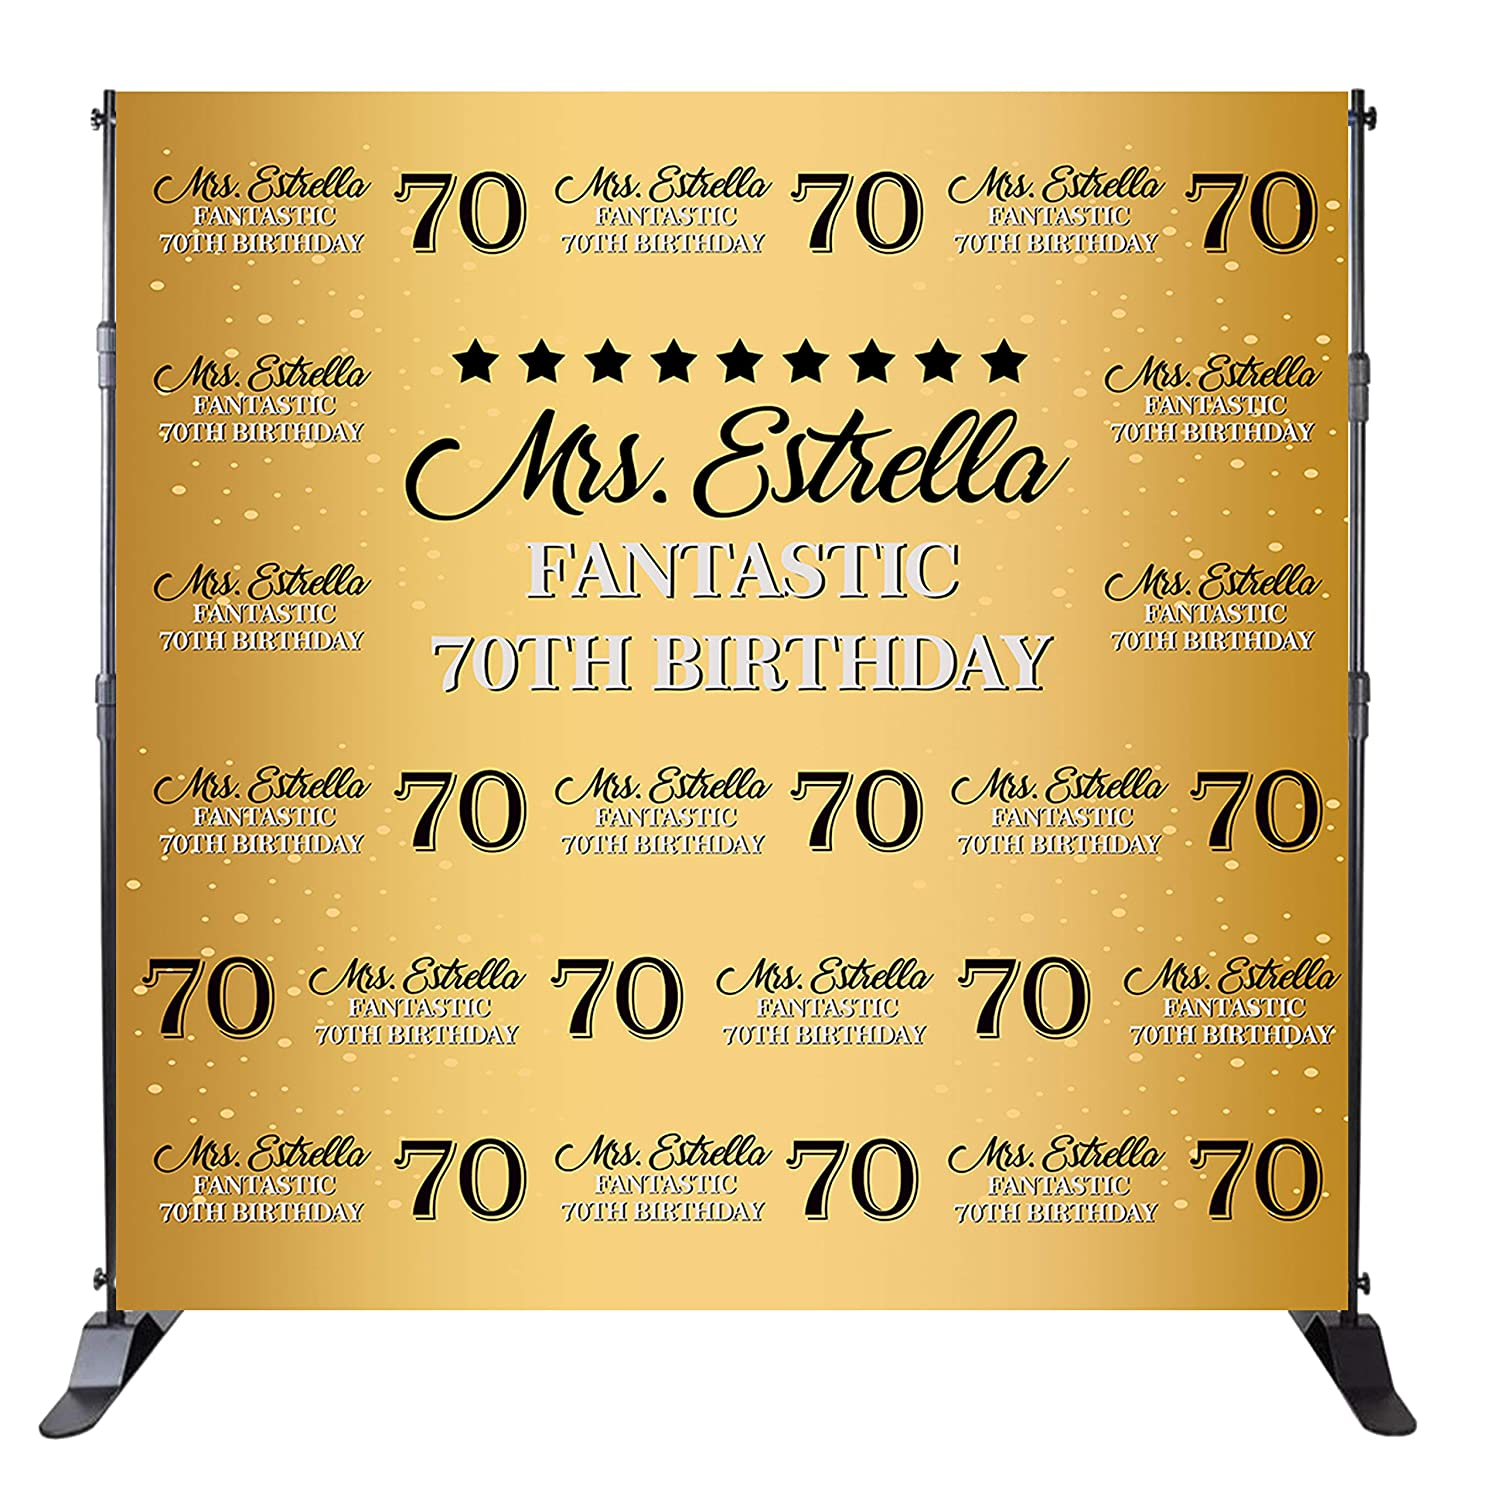 Mehofoto 70th Birthday Backdrop Gold Step And Repeat Background 70 Years Old Party Banner Decoration Adult Man Woman Customized Photo Studio Props Name